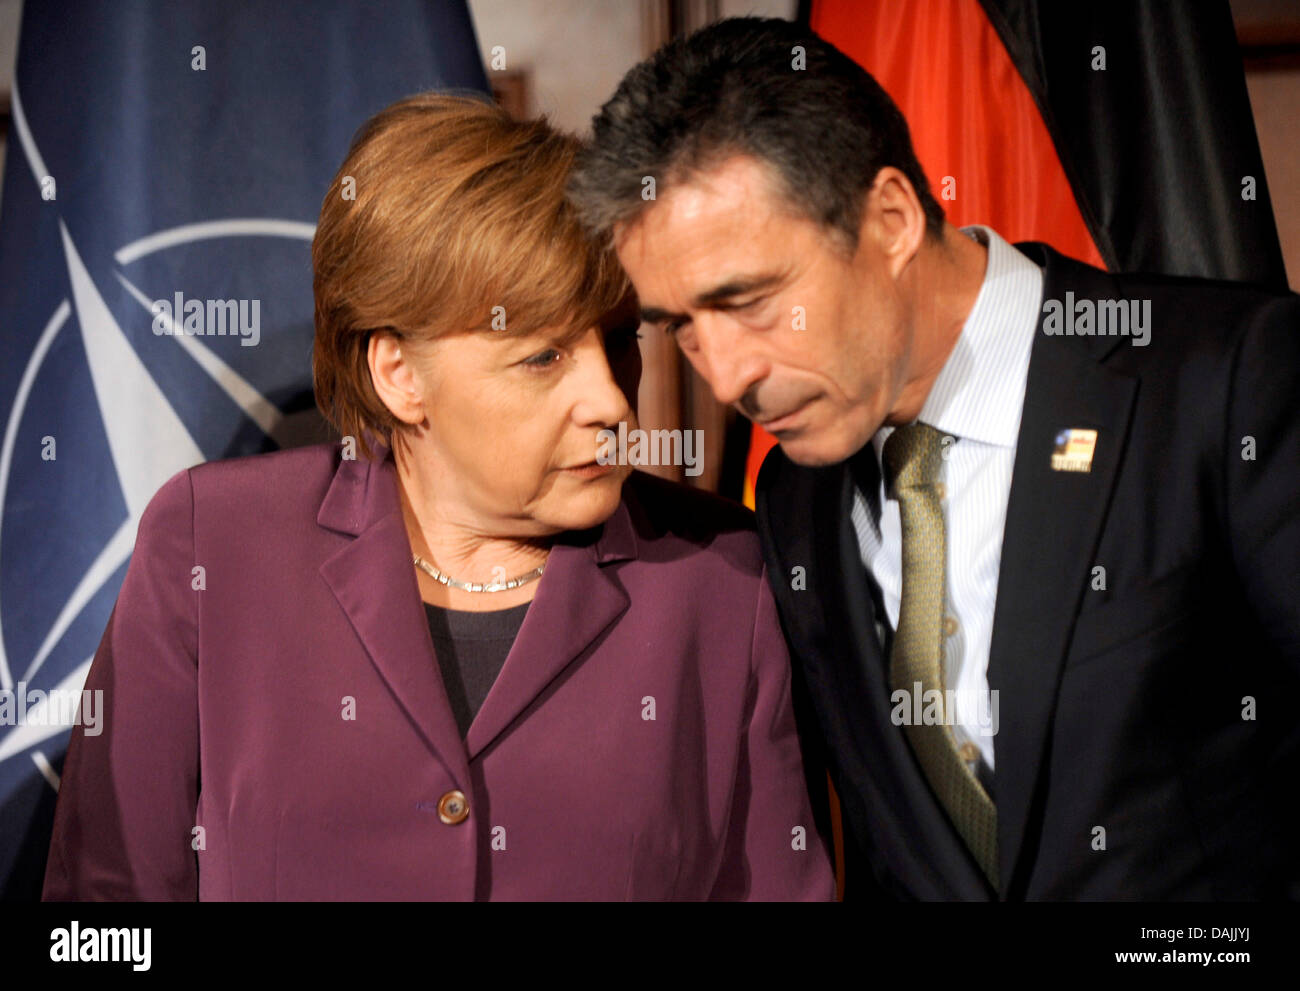 NATO General Secretary Anders Fogh Rasmussen (r) talks with German Chancellor Angela Merkel during a reception at Stock Photo